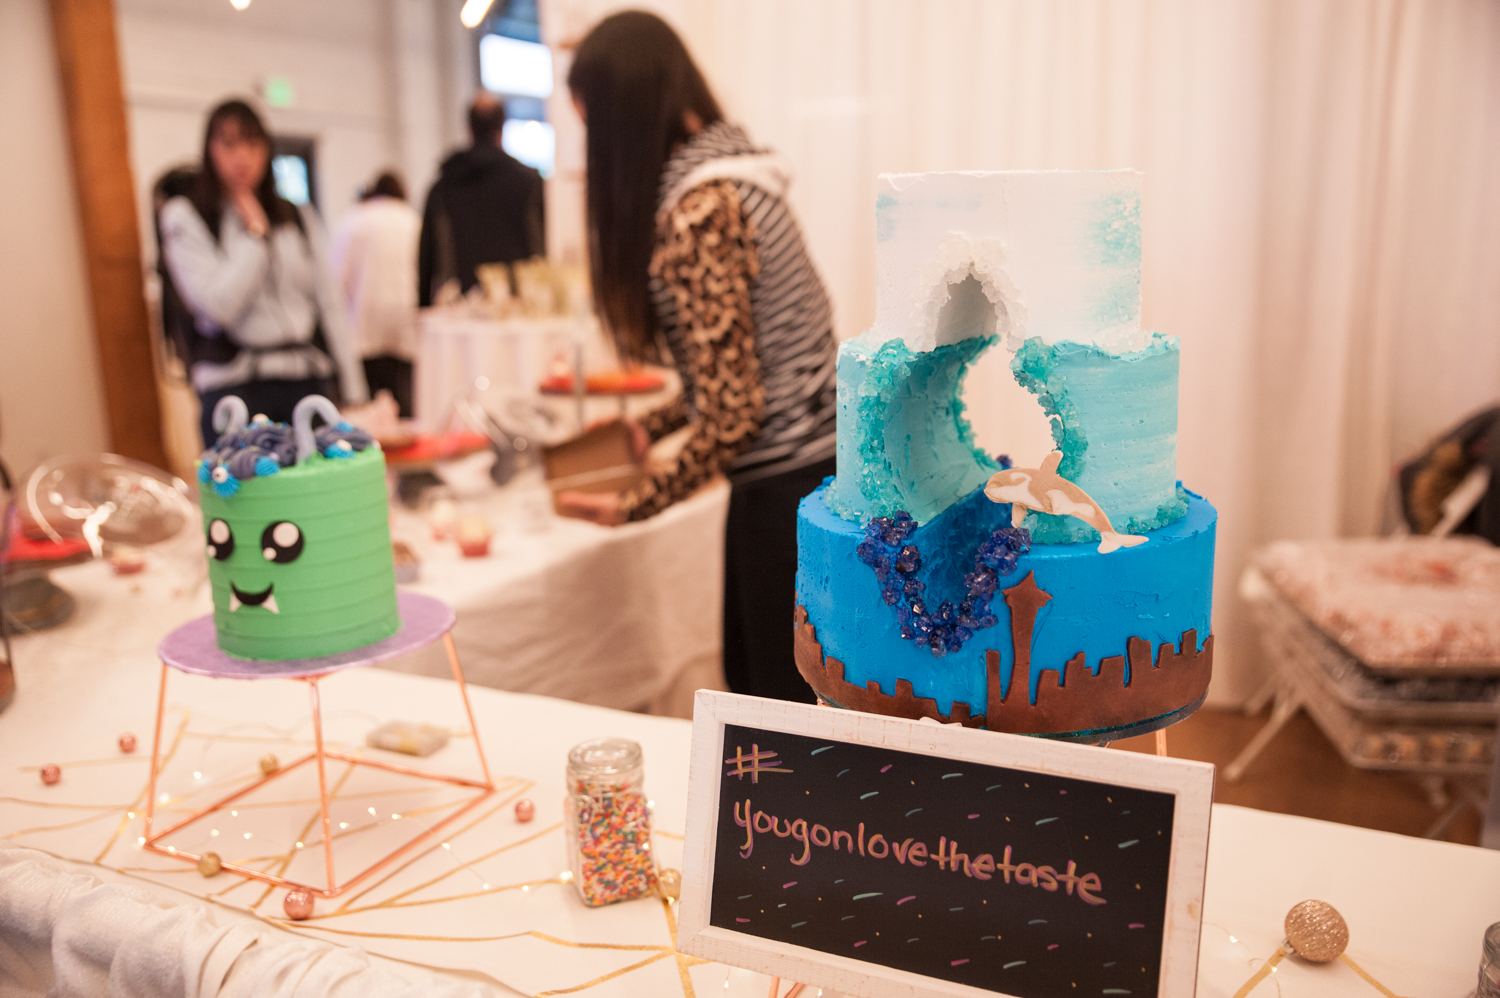 "The Seattle Cake Con & Dessert Showcase 2020 combines talent from around the city and country! Attendees can find a wedding cake baker, chocolatier, doughnut expert - you name it. Cake Con continues Monday, Feb. 17 at Block 41 in Belltown, from 10 a.m. through 5 p.m. Tickets are $25 and can be bought{&nbsp;}<a  href=""https://www.seattlecakecon.com/purchase-tickets-1"" target=""_blank"">online</a>{&nbsp;}or at the door. (Image: Elizabeth Crook / Seattle Refined)"